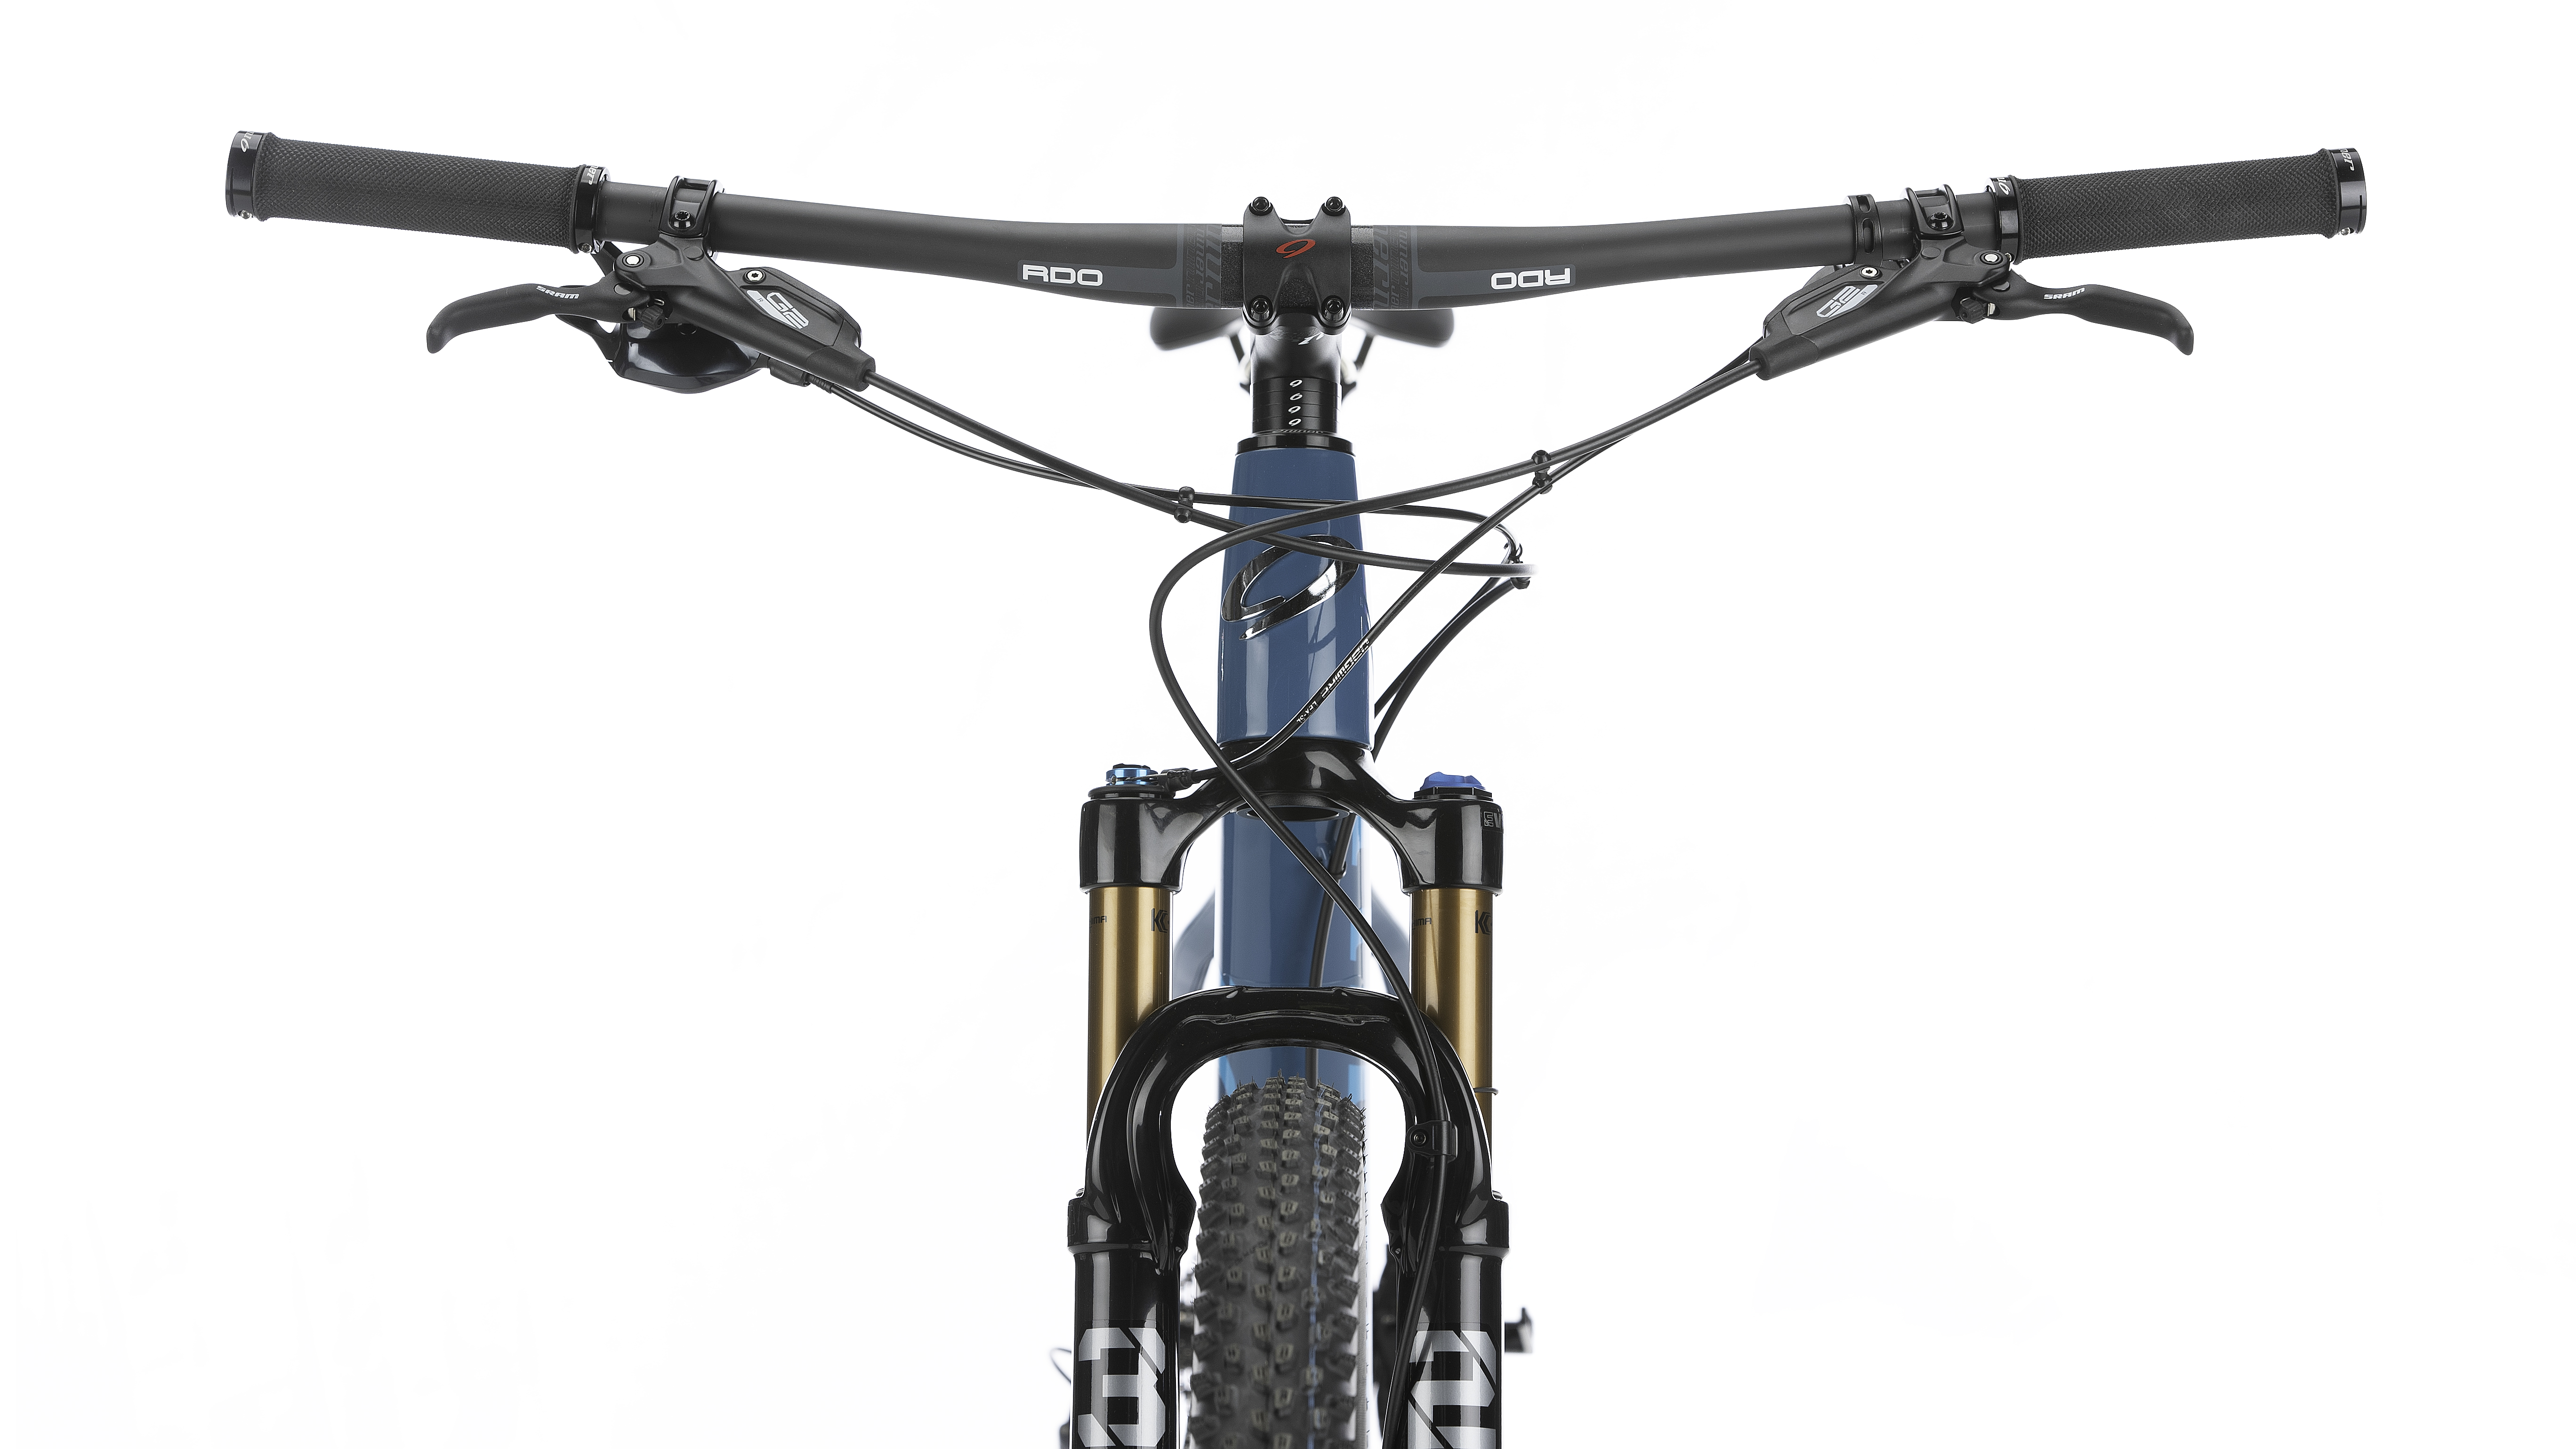 The suspension of Niner AIR 9